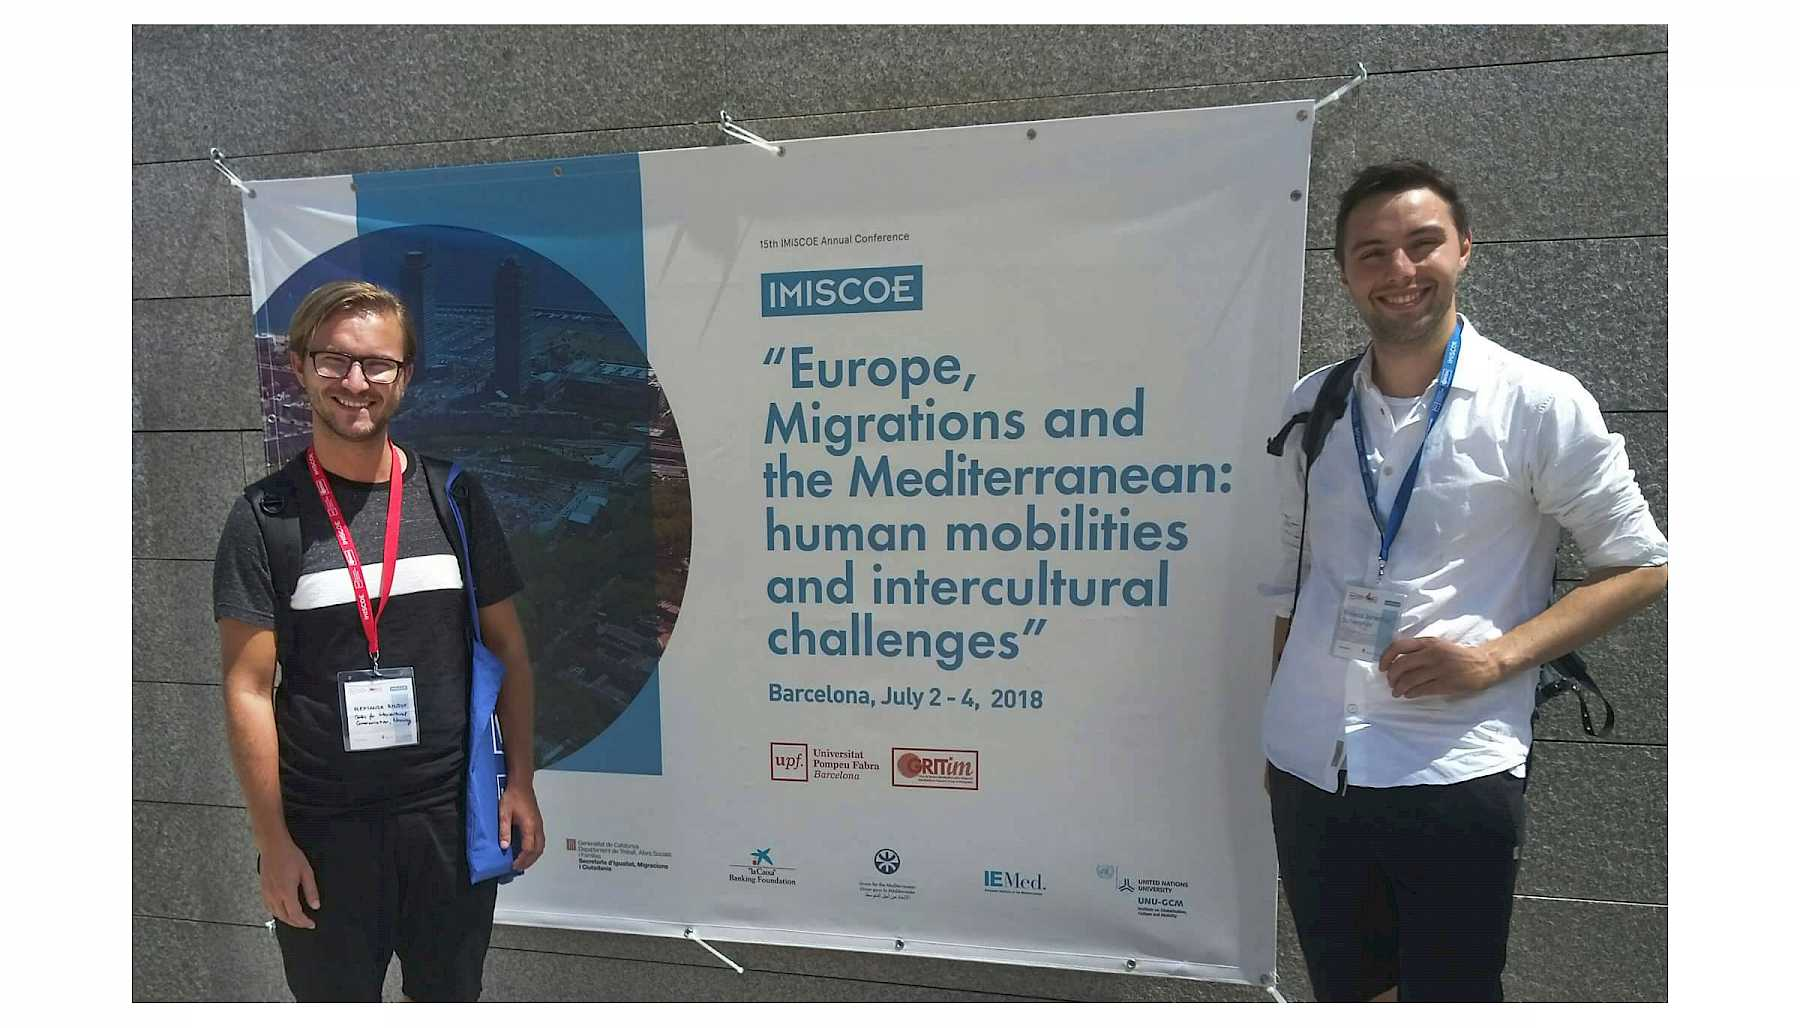 Mateus Schweyher (right) with SIK colleague Oleksandr Ryndyk (left) at the IMISCOE conference in Barcelona.